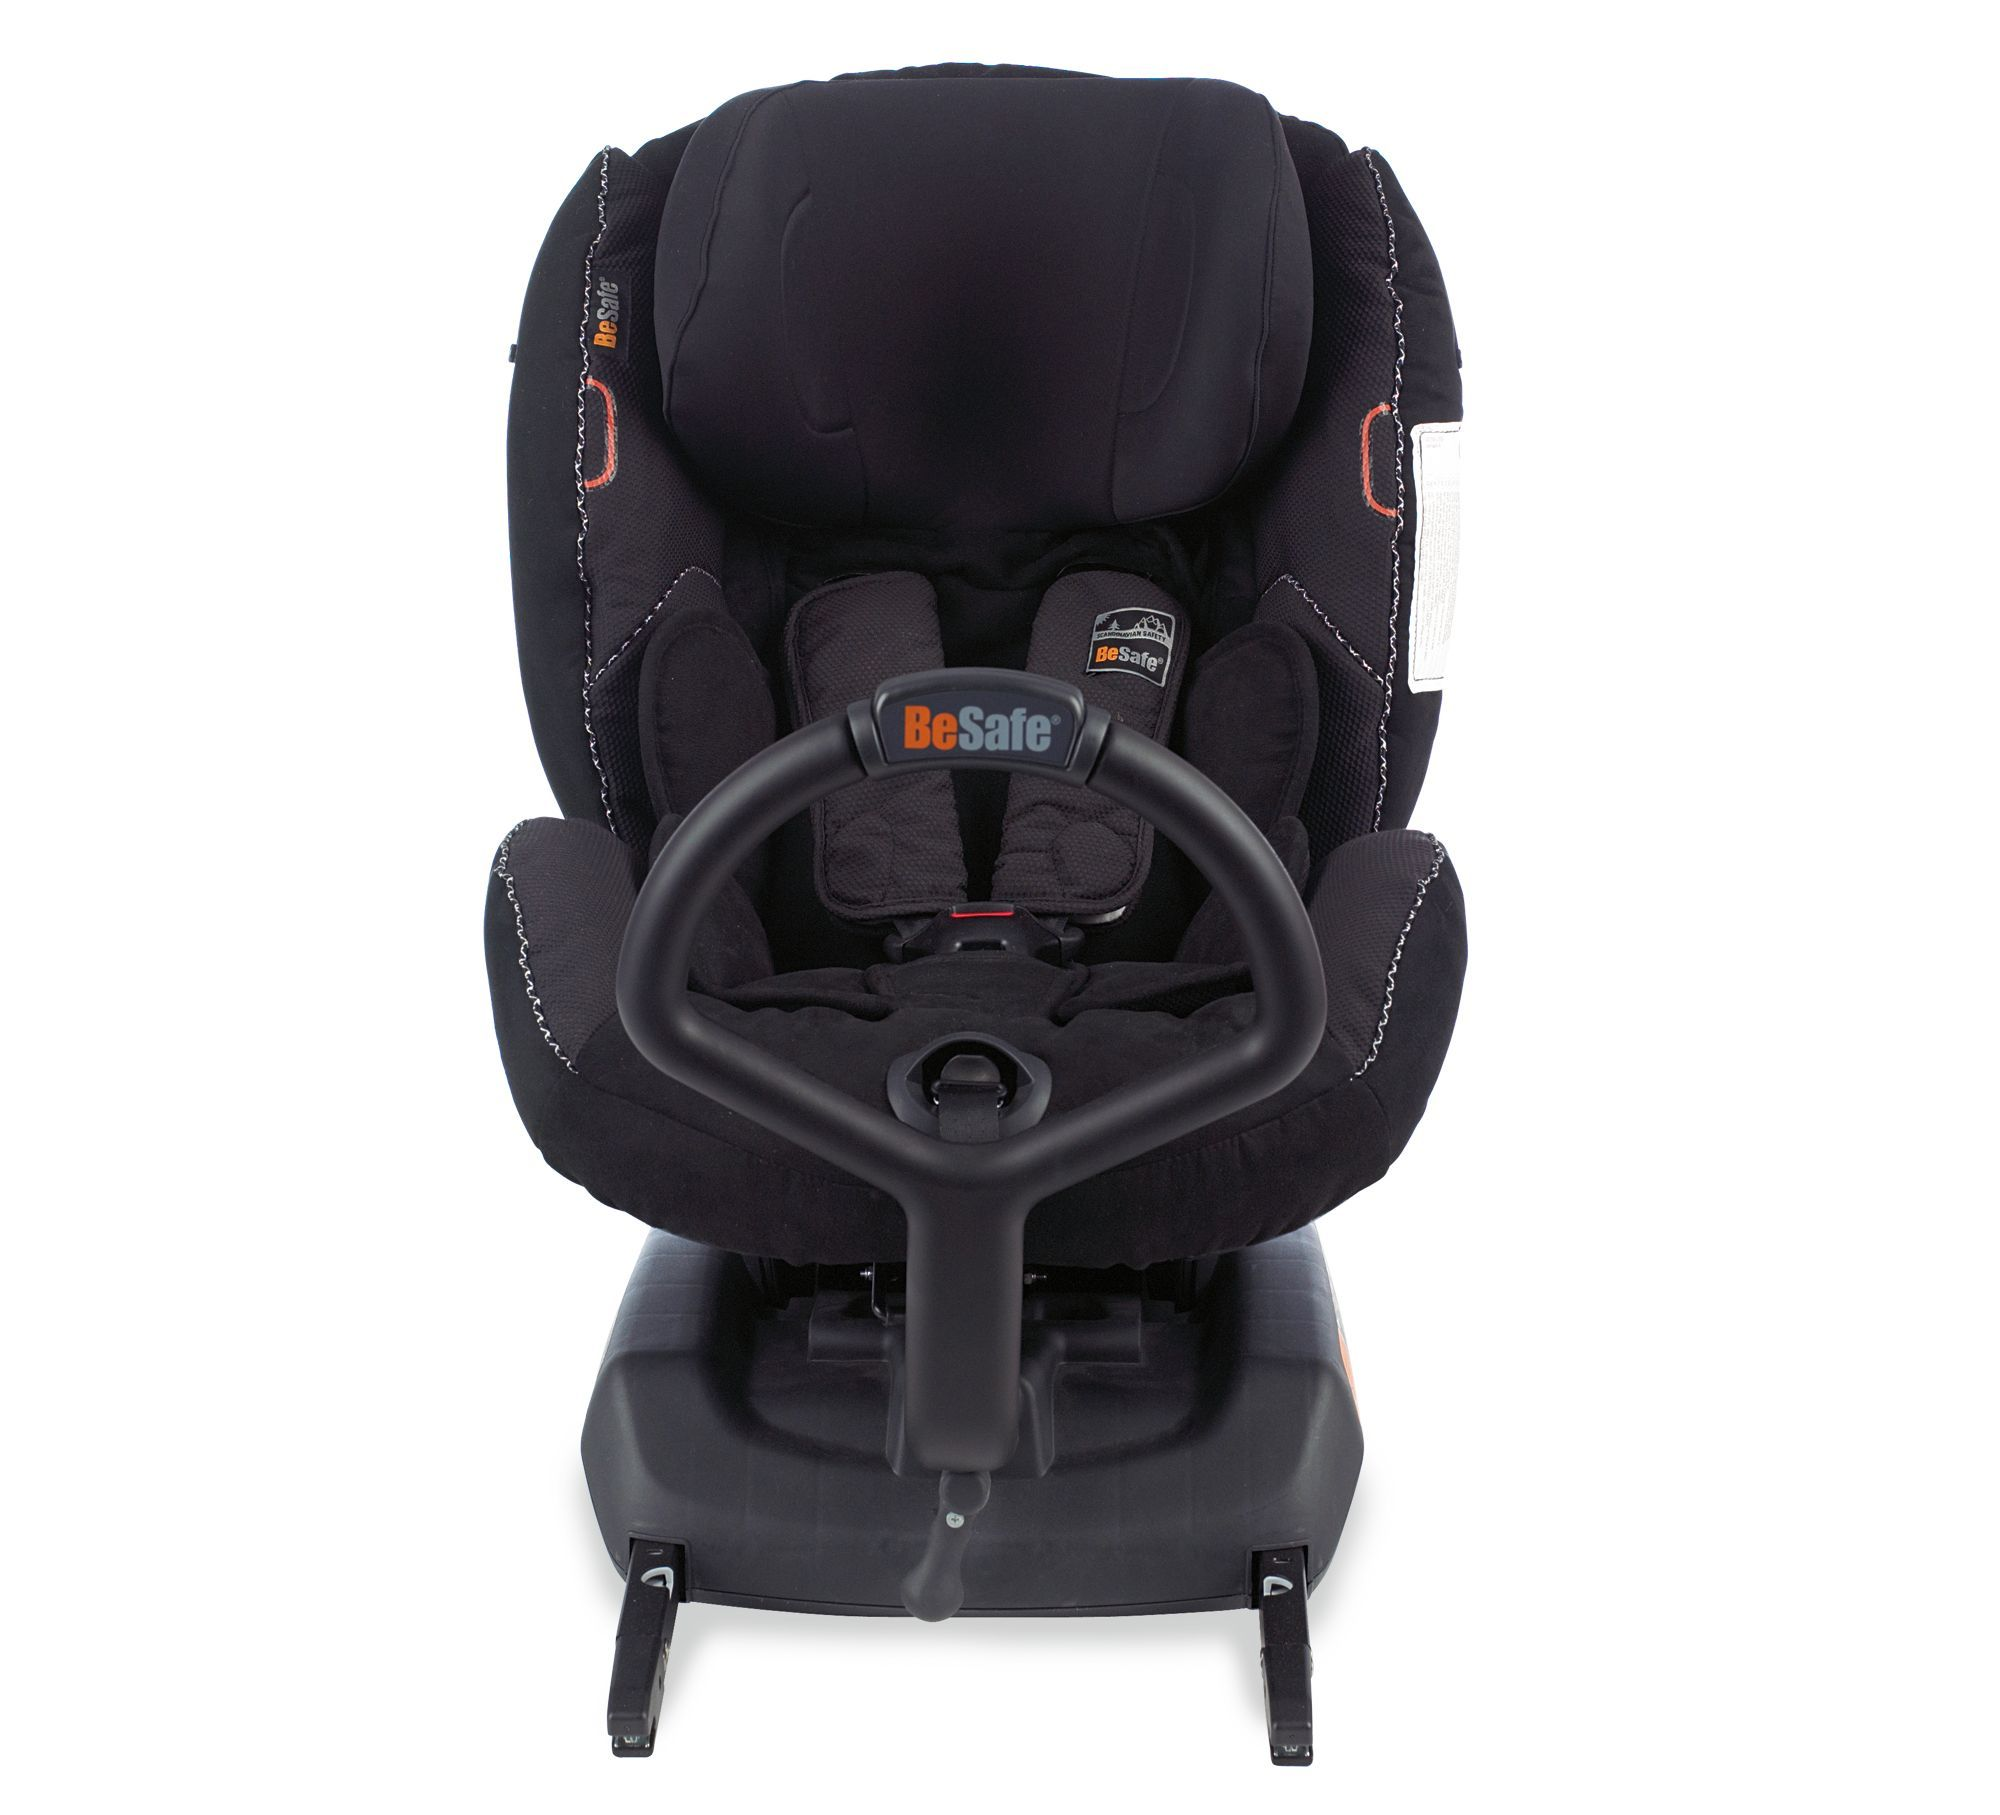 BESAFE iZi Combi ISOFIX Combination Car Seat Black